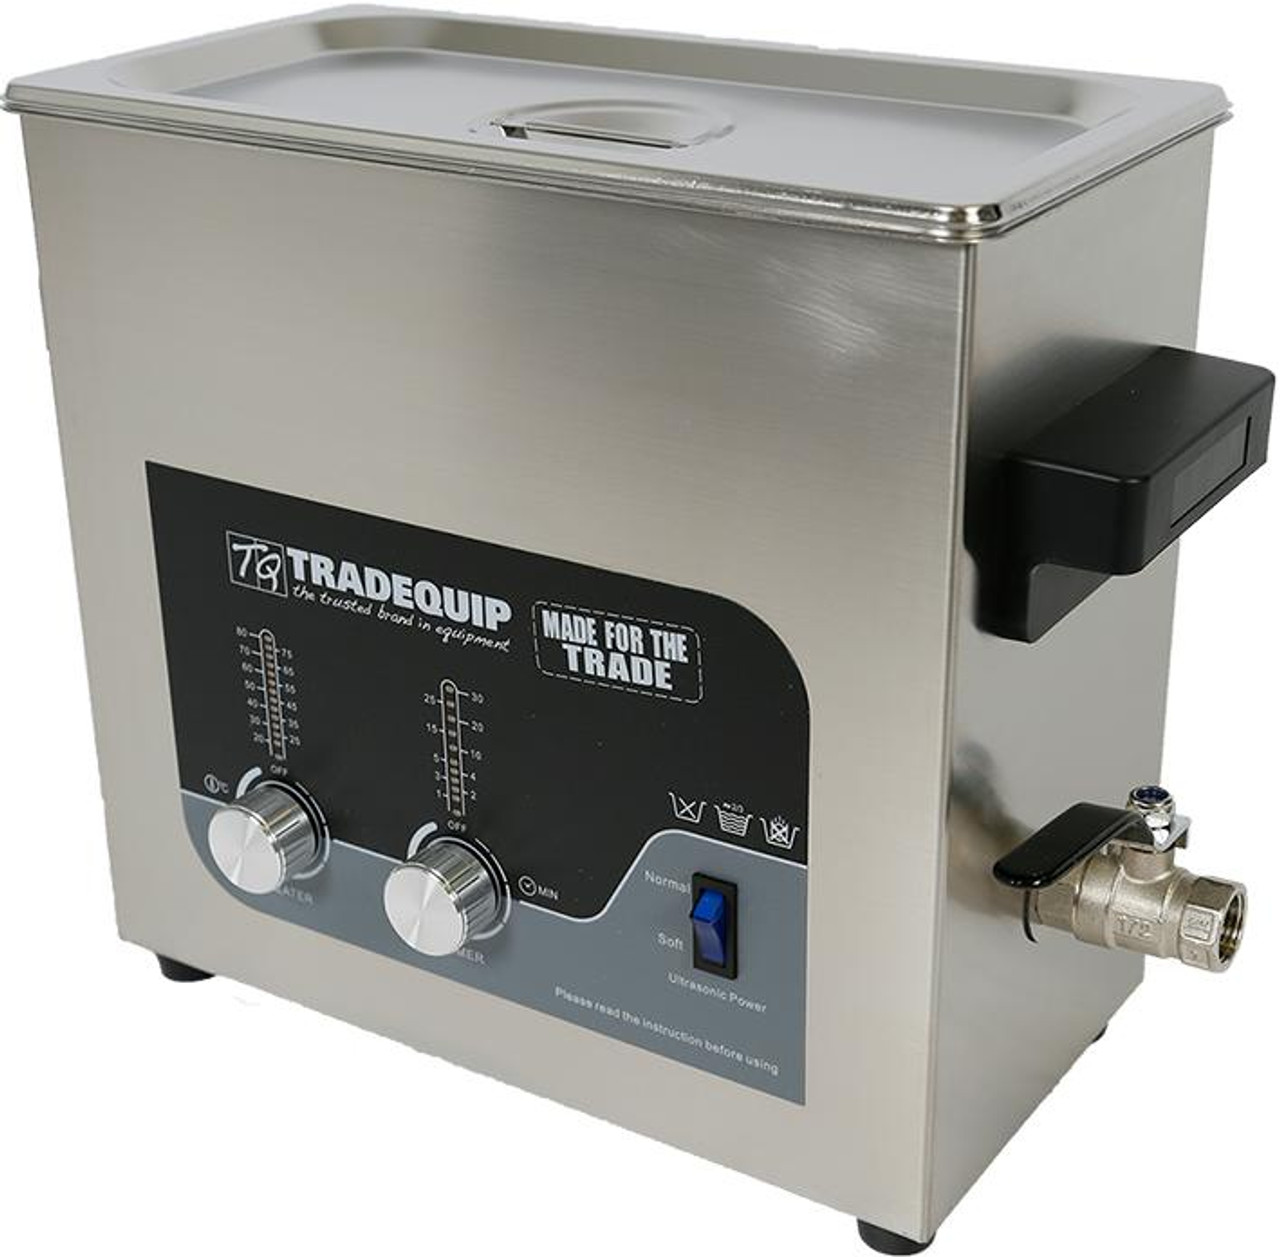 Ultrasonic Parts Cleaner, 36 Litre, 1039T, Tradequip